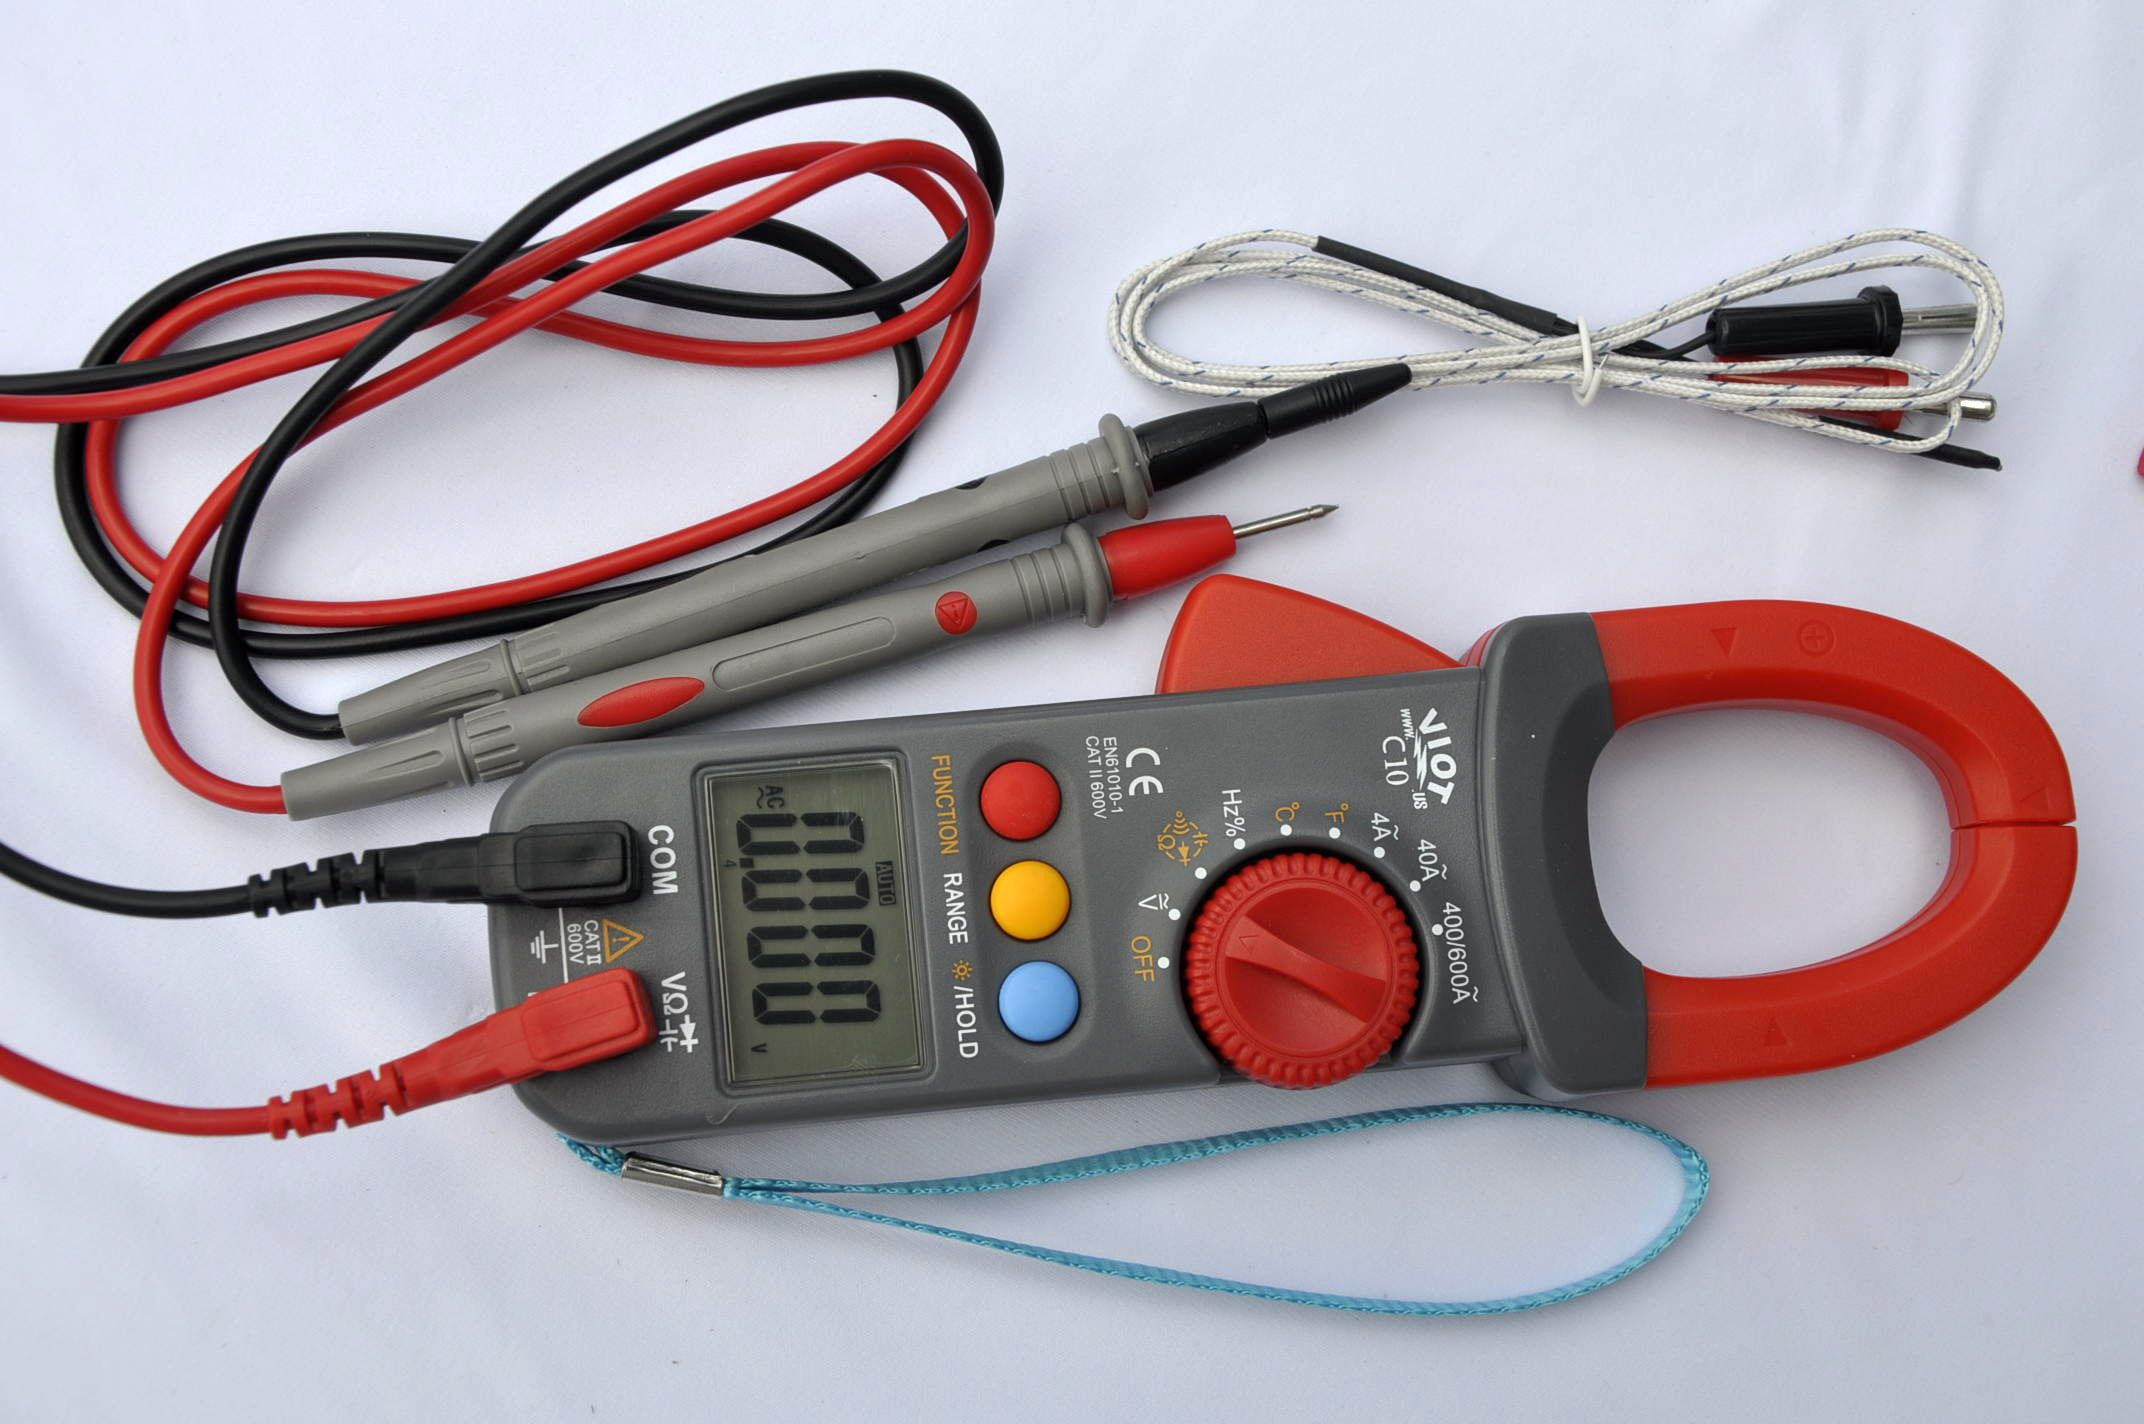 Details about Digital Clamp Meter Ammeter Multimeter DMM+Capacitor Tester+K  Thermocouple HVAC